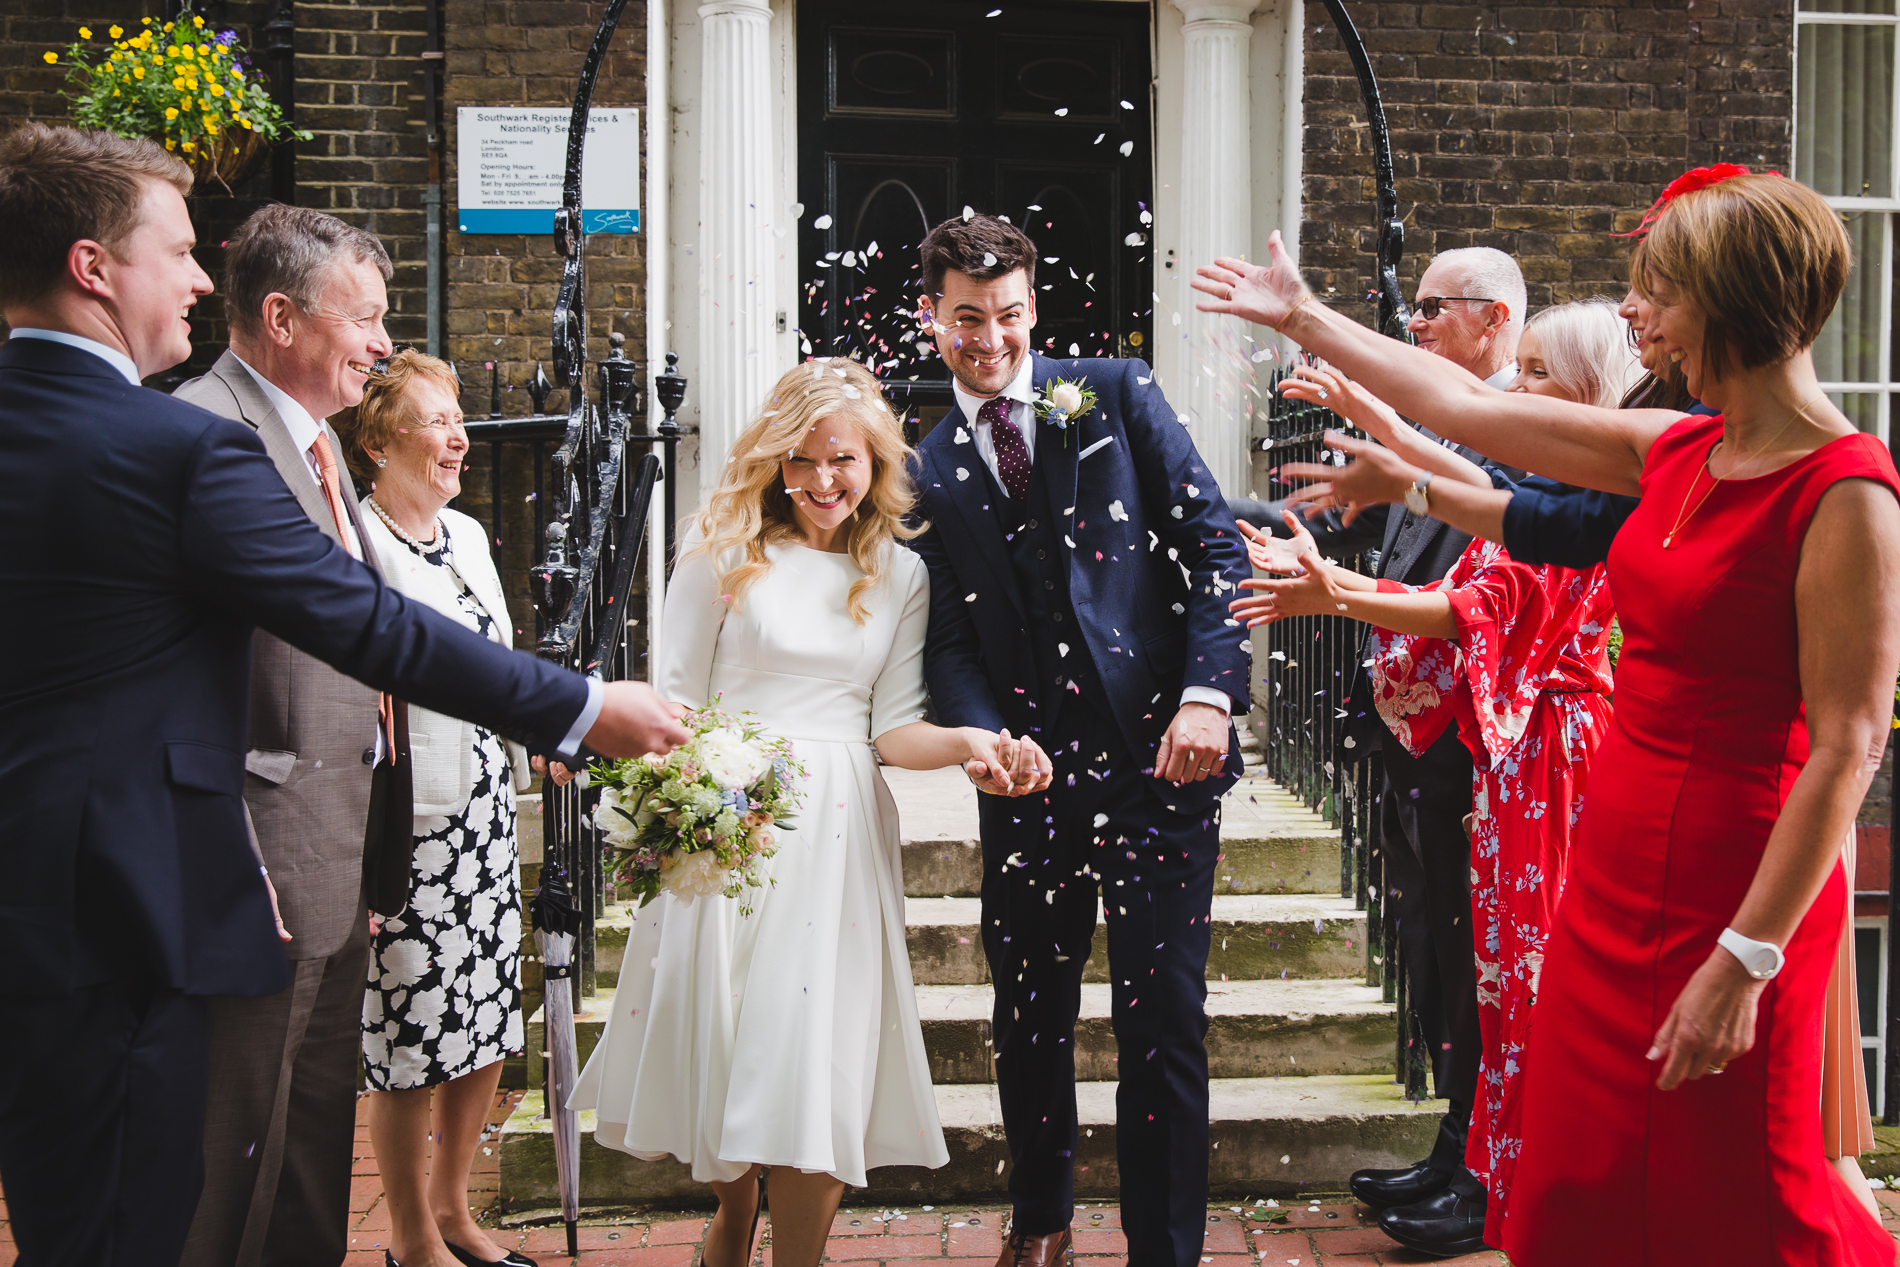 London Wedding Elopement Confetti Celebration Picture | friends and family shower them with confetti